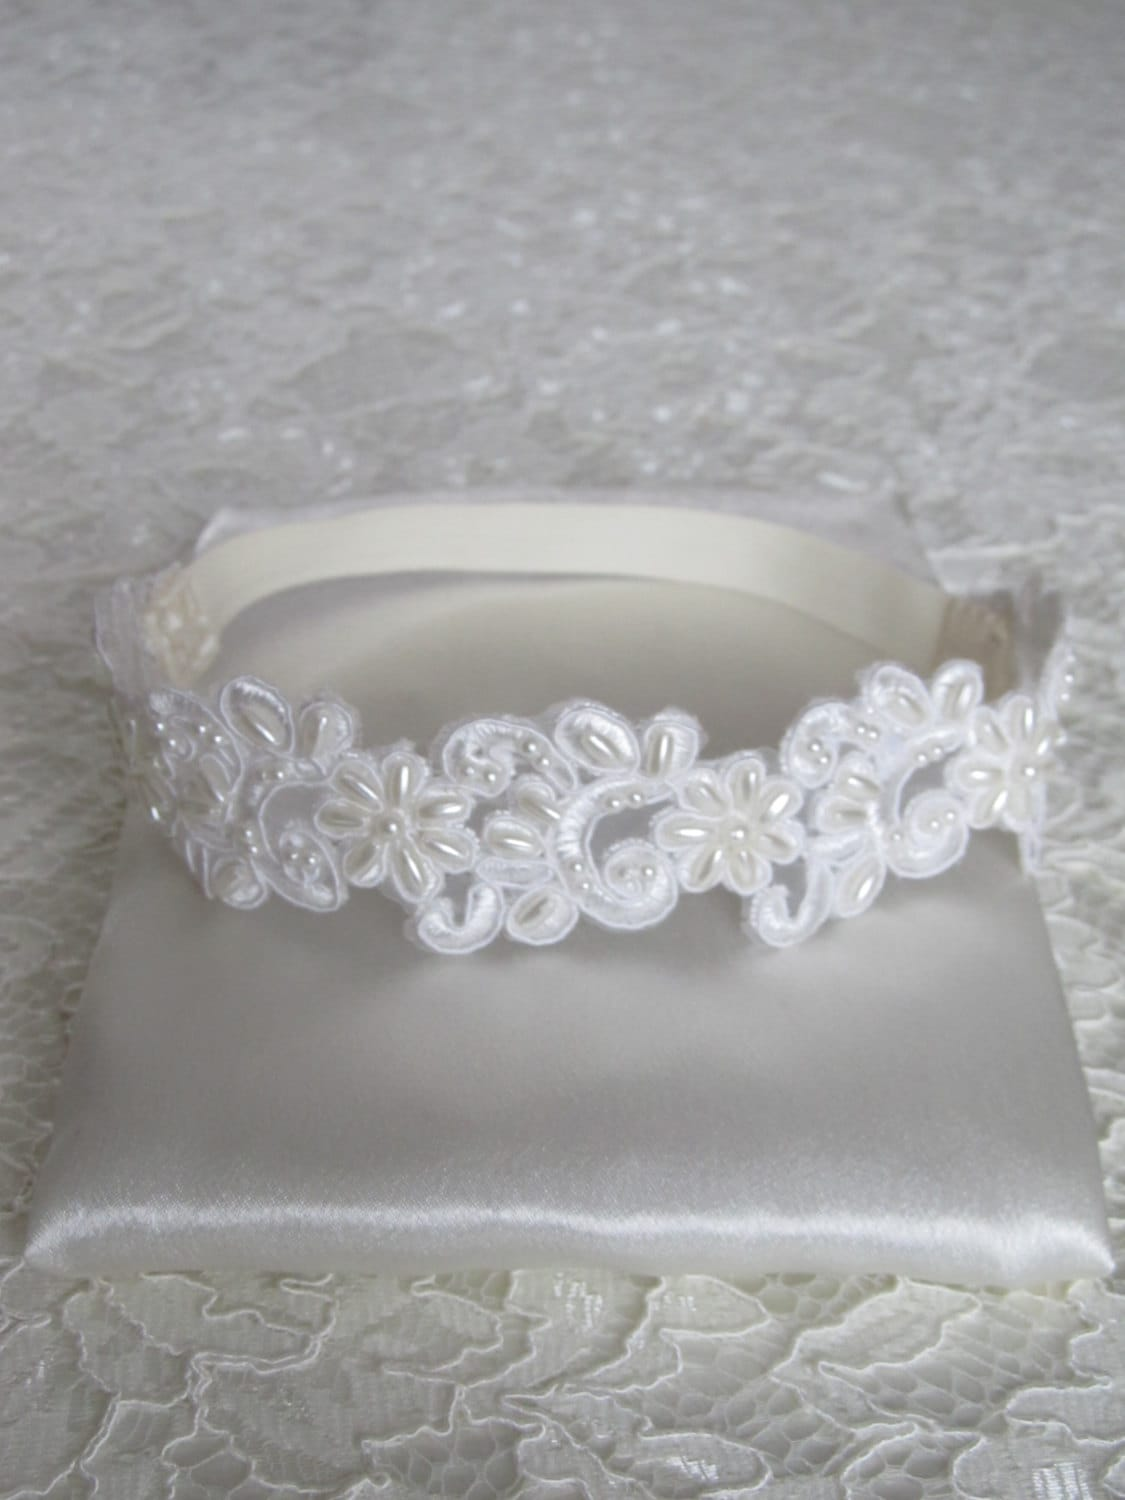 Beaded French Ivory Lace Bridal Garter,Wedding Garter,Bridal Accessories,Style #G03